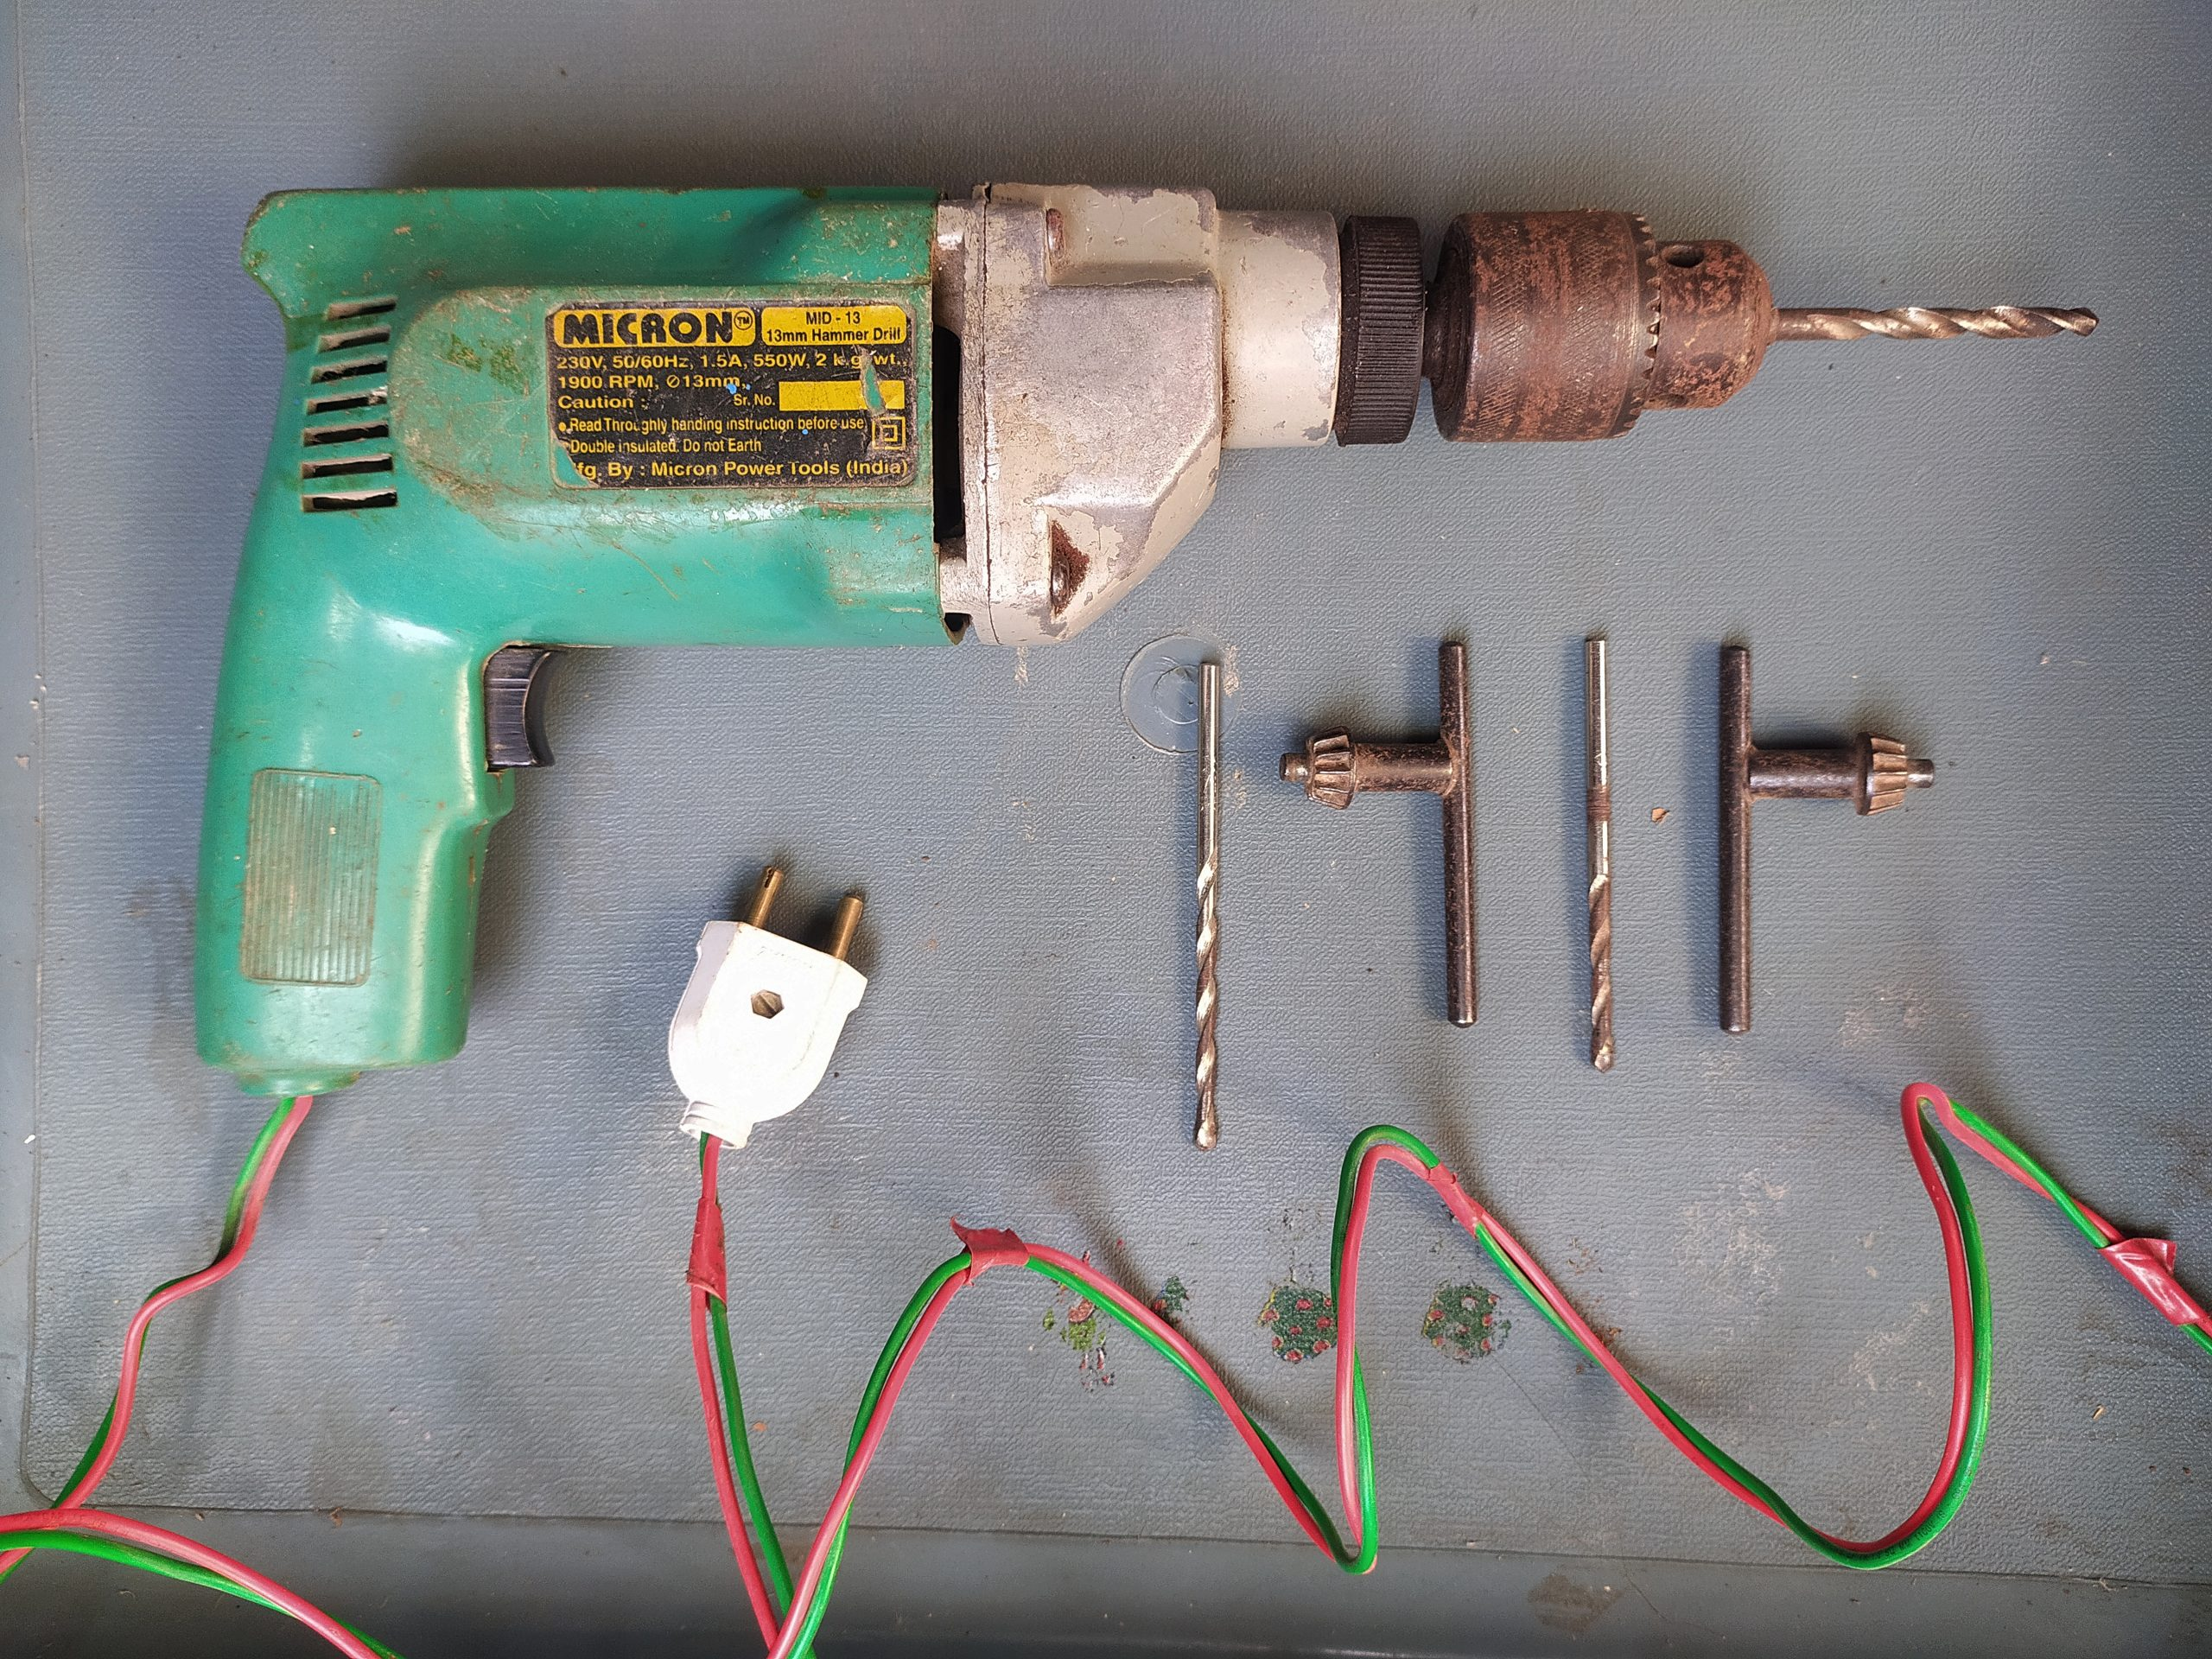 An electric drill machine and bits